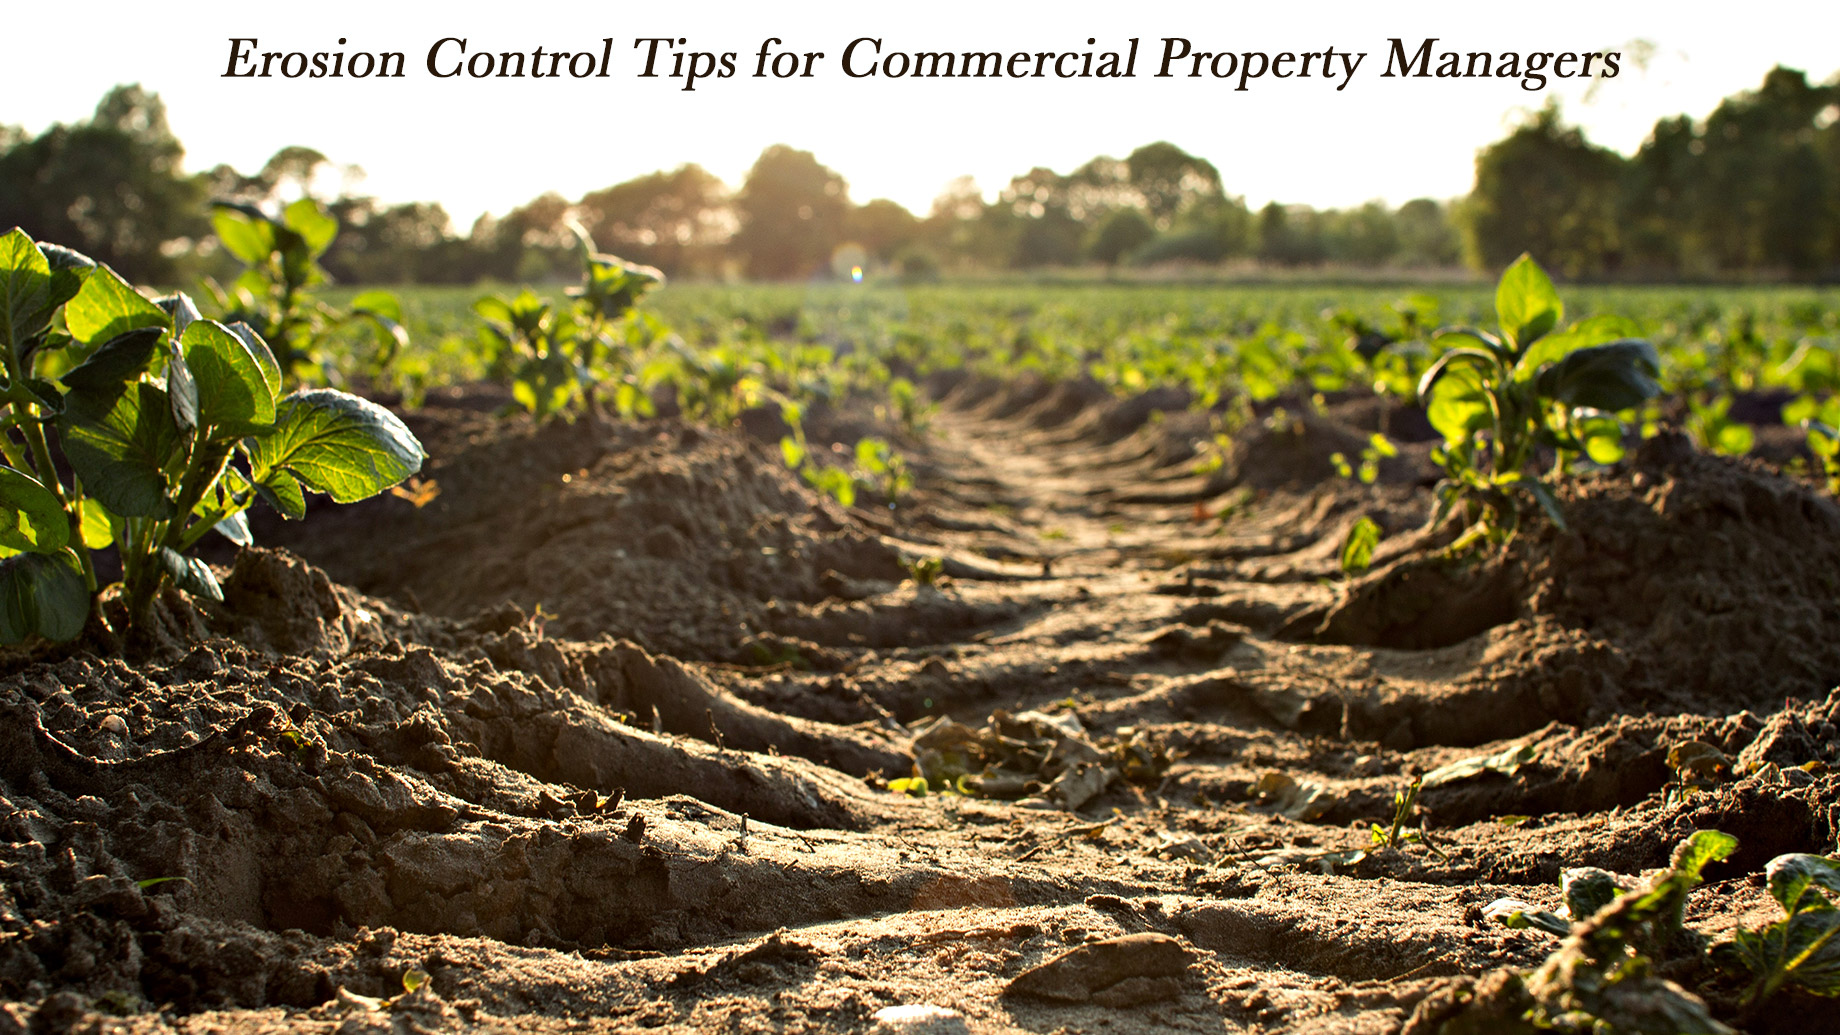 Erosion Control Tips for Commercial Property Managers